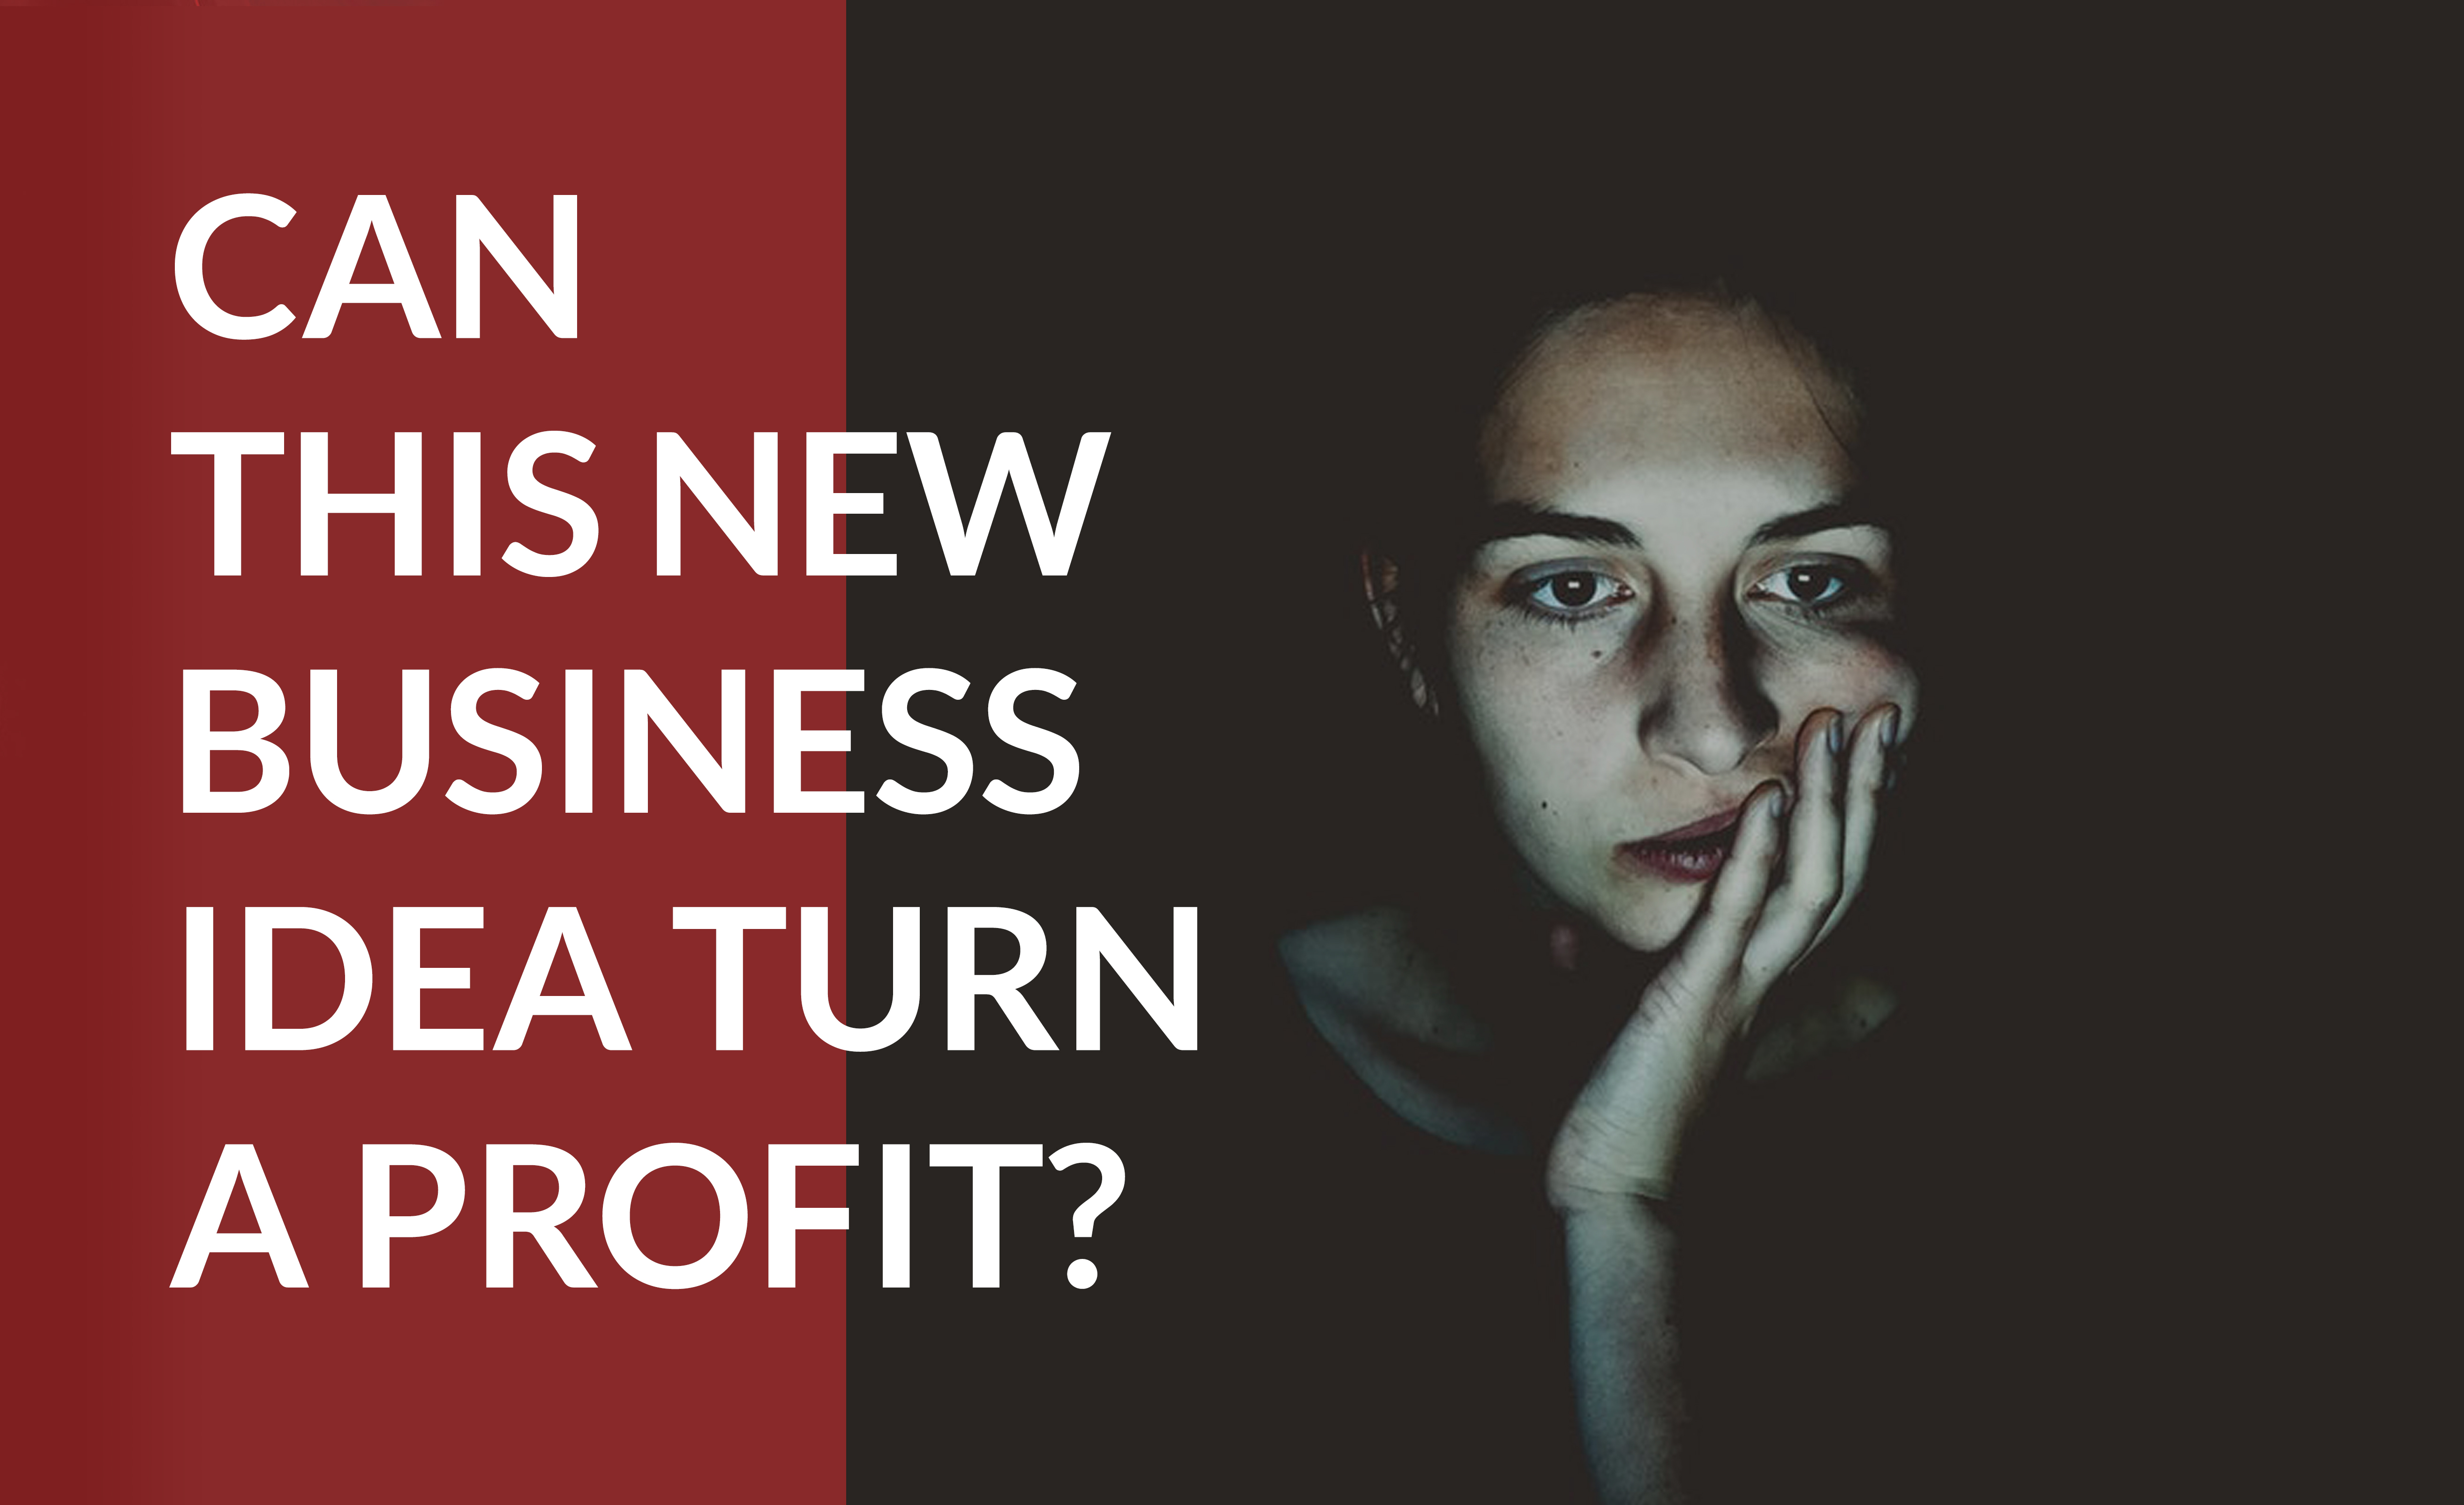 Learn how to test if your new business will turn a profit.